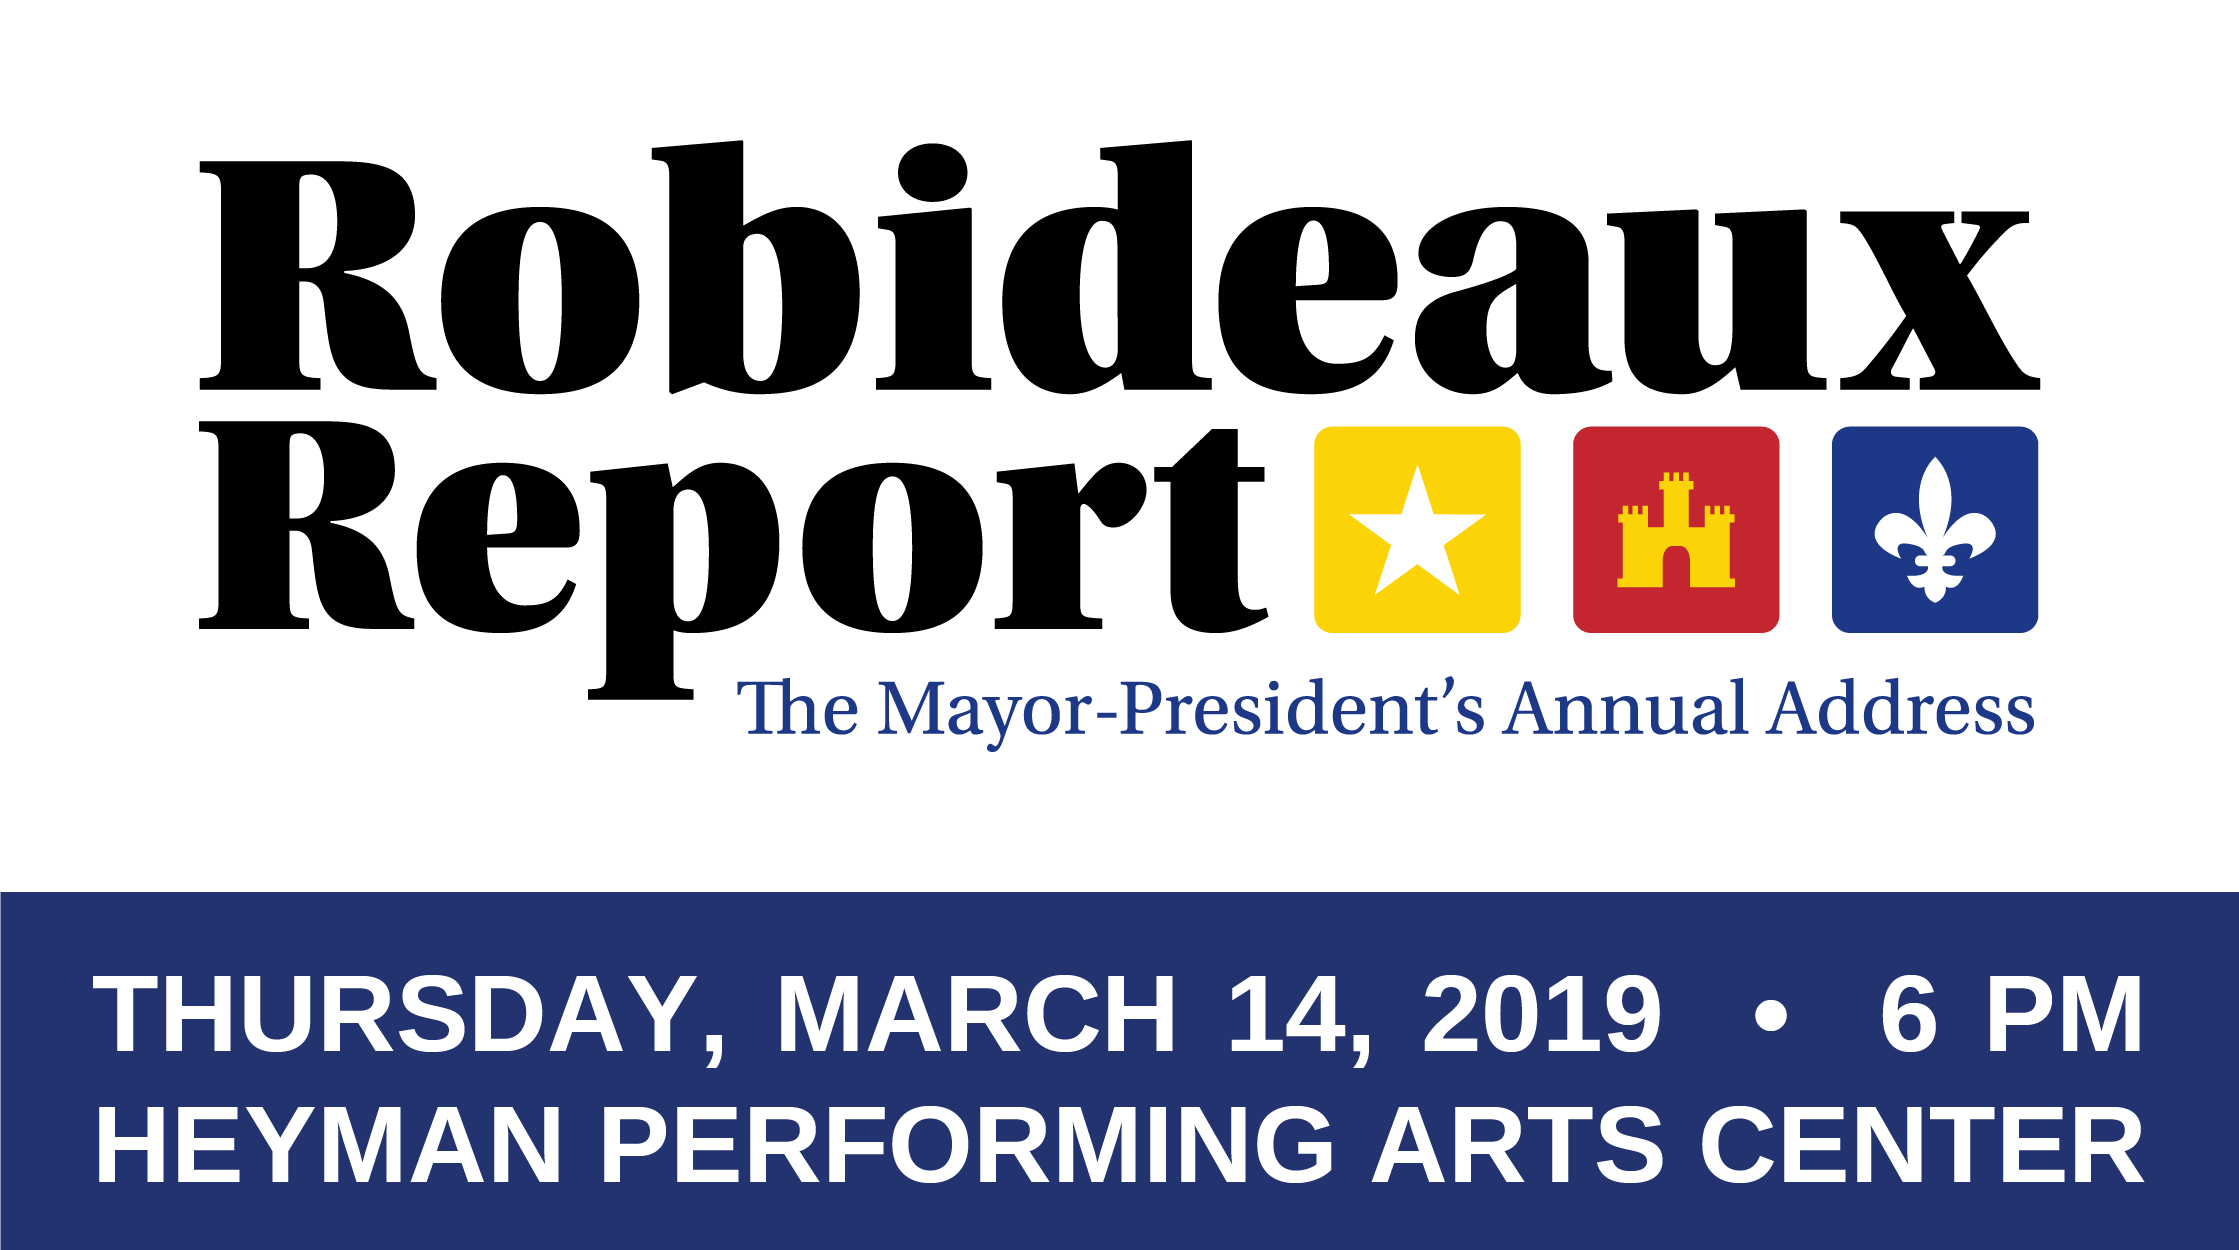 RobideauxReport2019-02.png